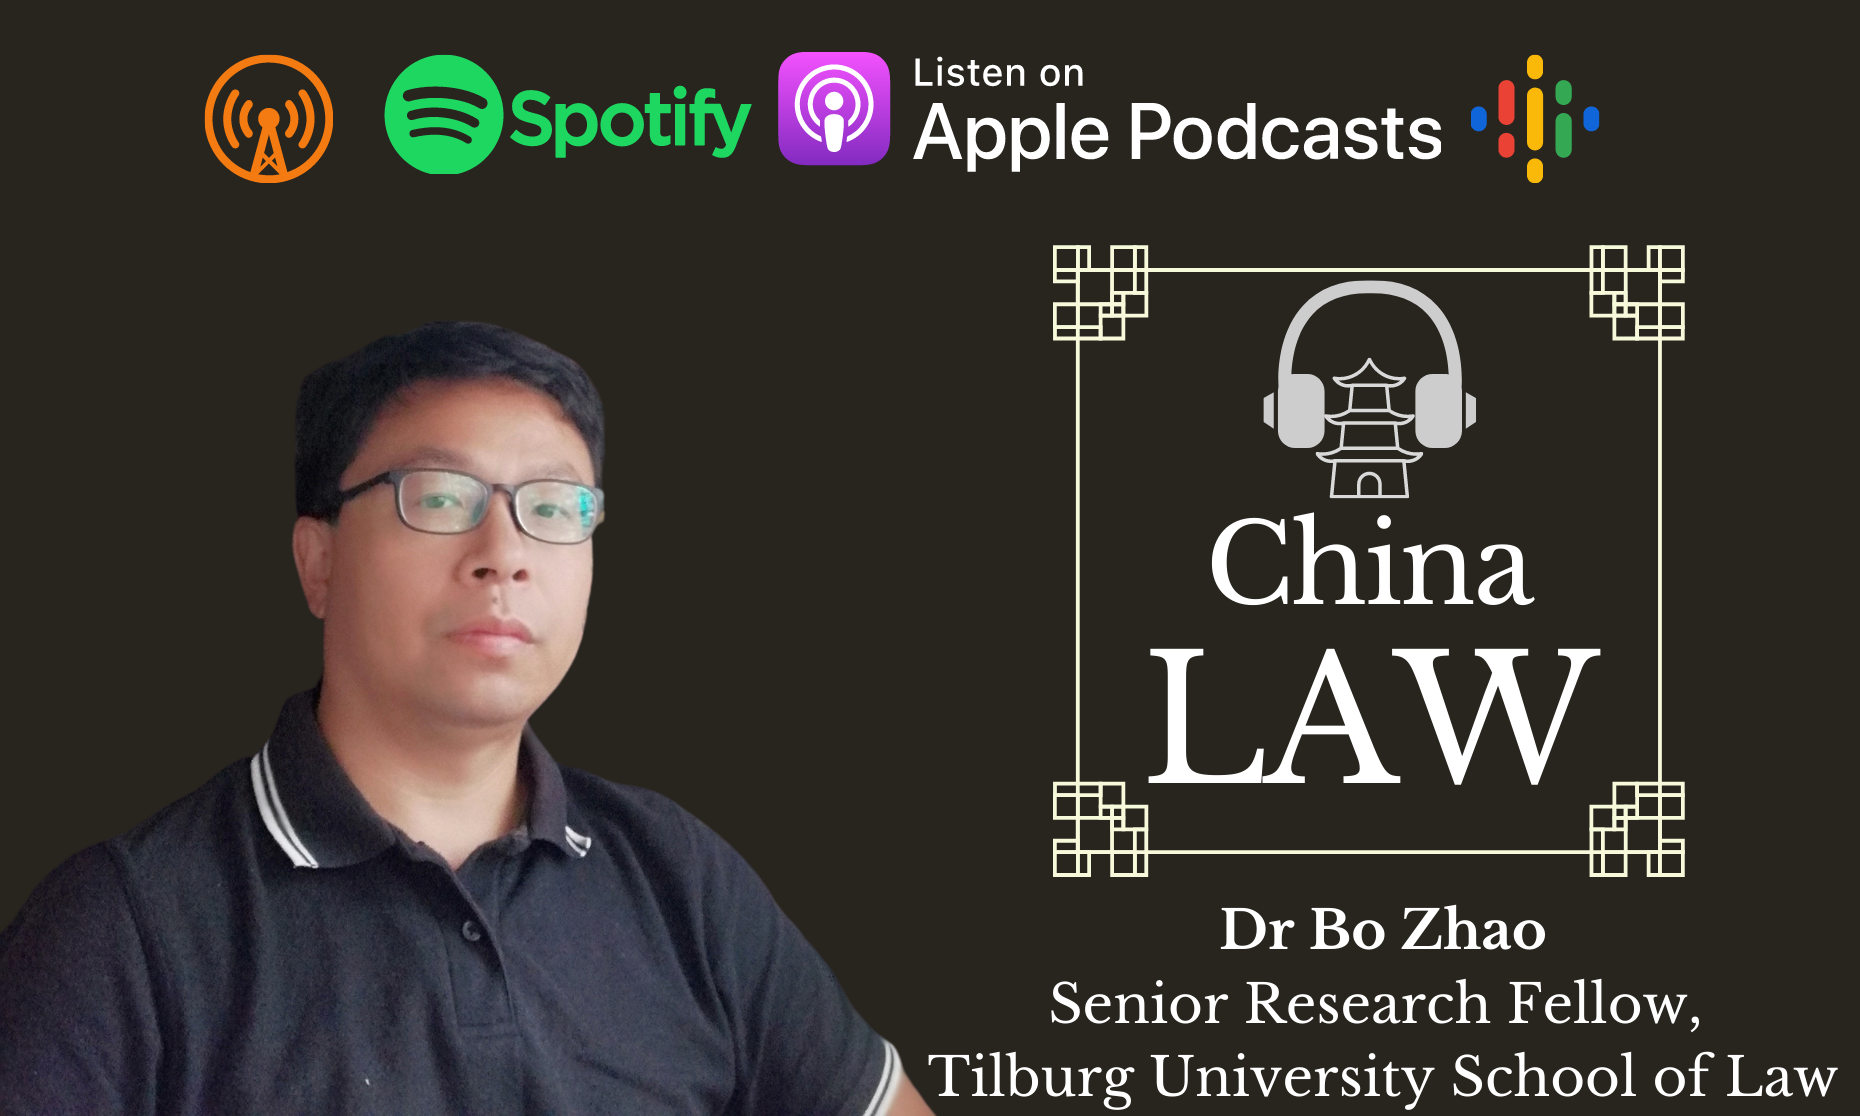 Podcast #15: Data War - China's Cross-Border Data Controls Compared with the EU, US